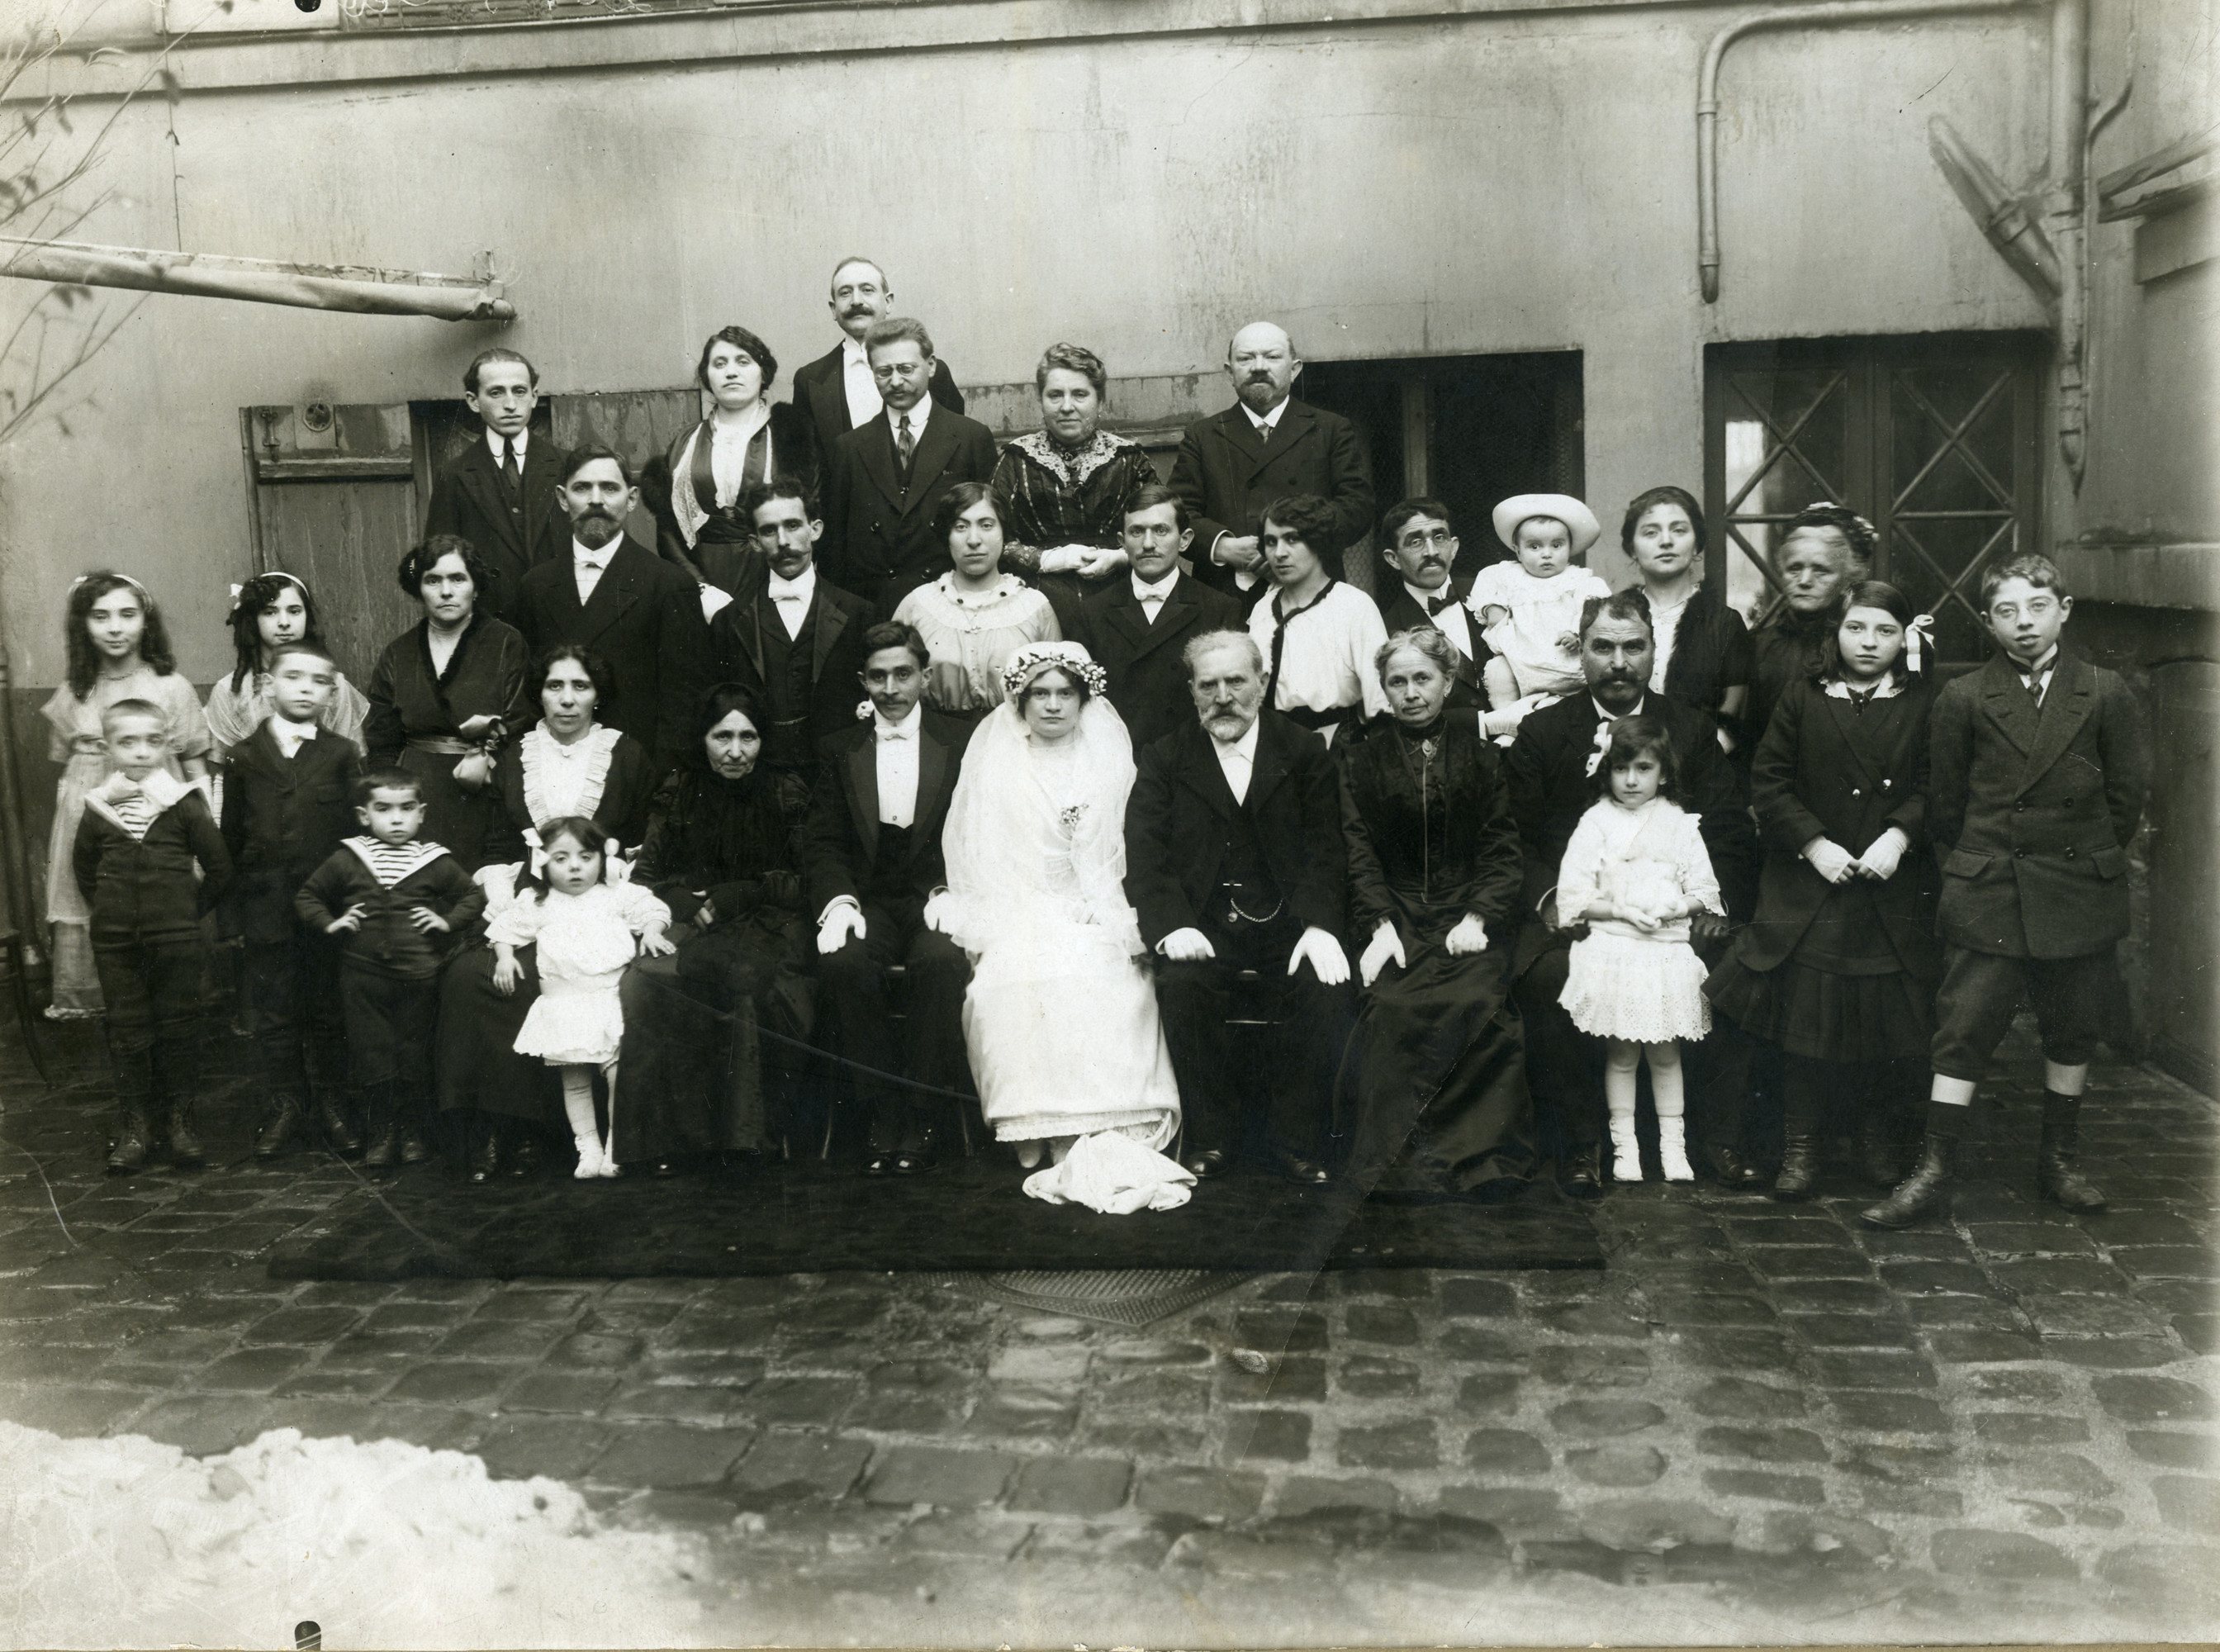 Wedding of a Jewish couple in Paris.  Among those pictured are the bride and groom, Lucie and Leon Abramowitz.  In the front row (left side, wearing white dress) is Clara Abramowitz.  Seated directly behind her is her mother, Dora Abramowitz. To Dora's left is her mother, Mathilde Lipovitski.  Standing in the third row are (left to right), two unidentified girls, Esther (sister to Dora), Esther's husband, Meir, his wife Celine, an unidentified man, Rivka, Adolphe Lipovitski, his baby Simon, his wife Alice, and an unidentified woman.  Standing in the back, far left, is Yitzhack Isidor Lipovitski.